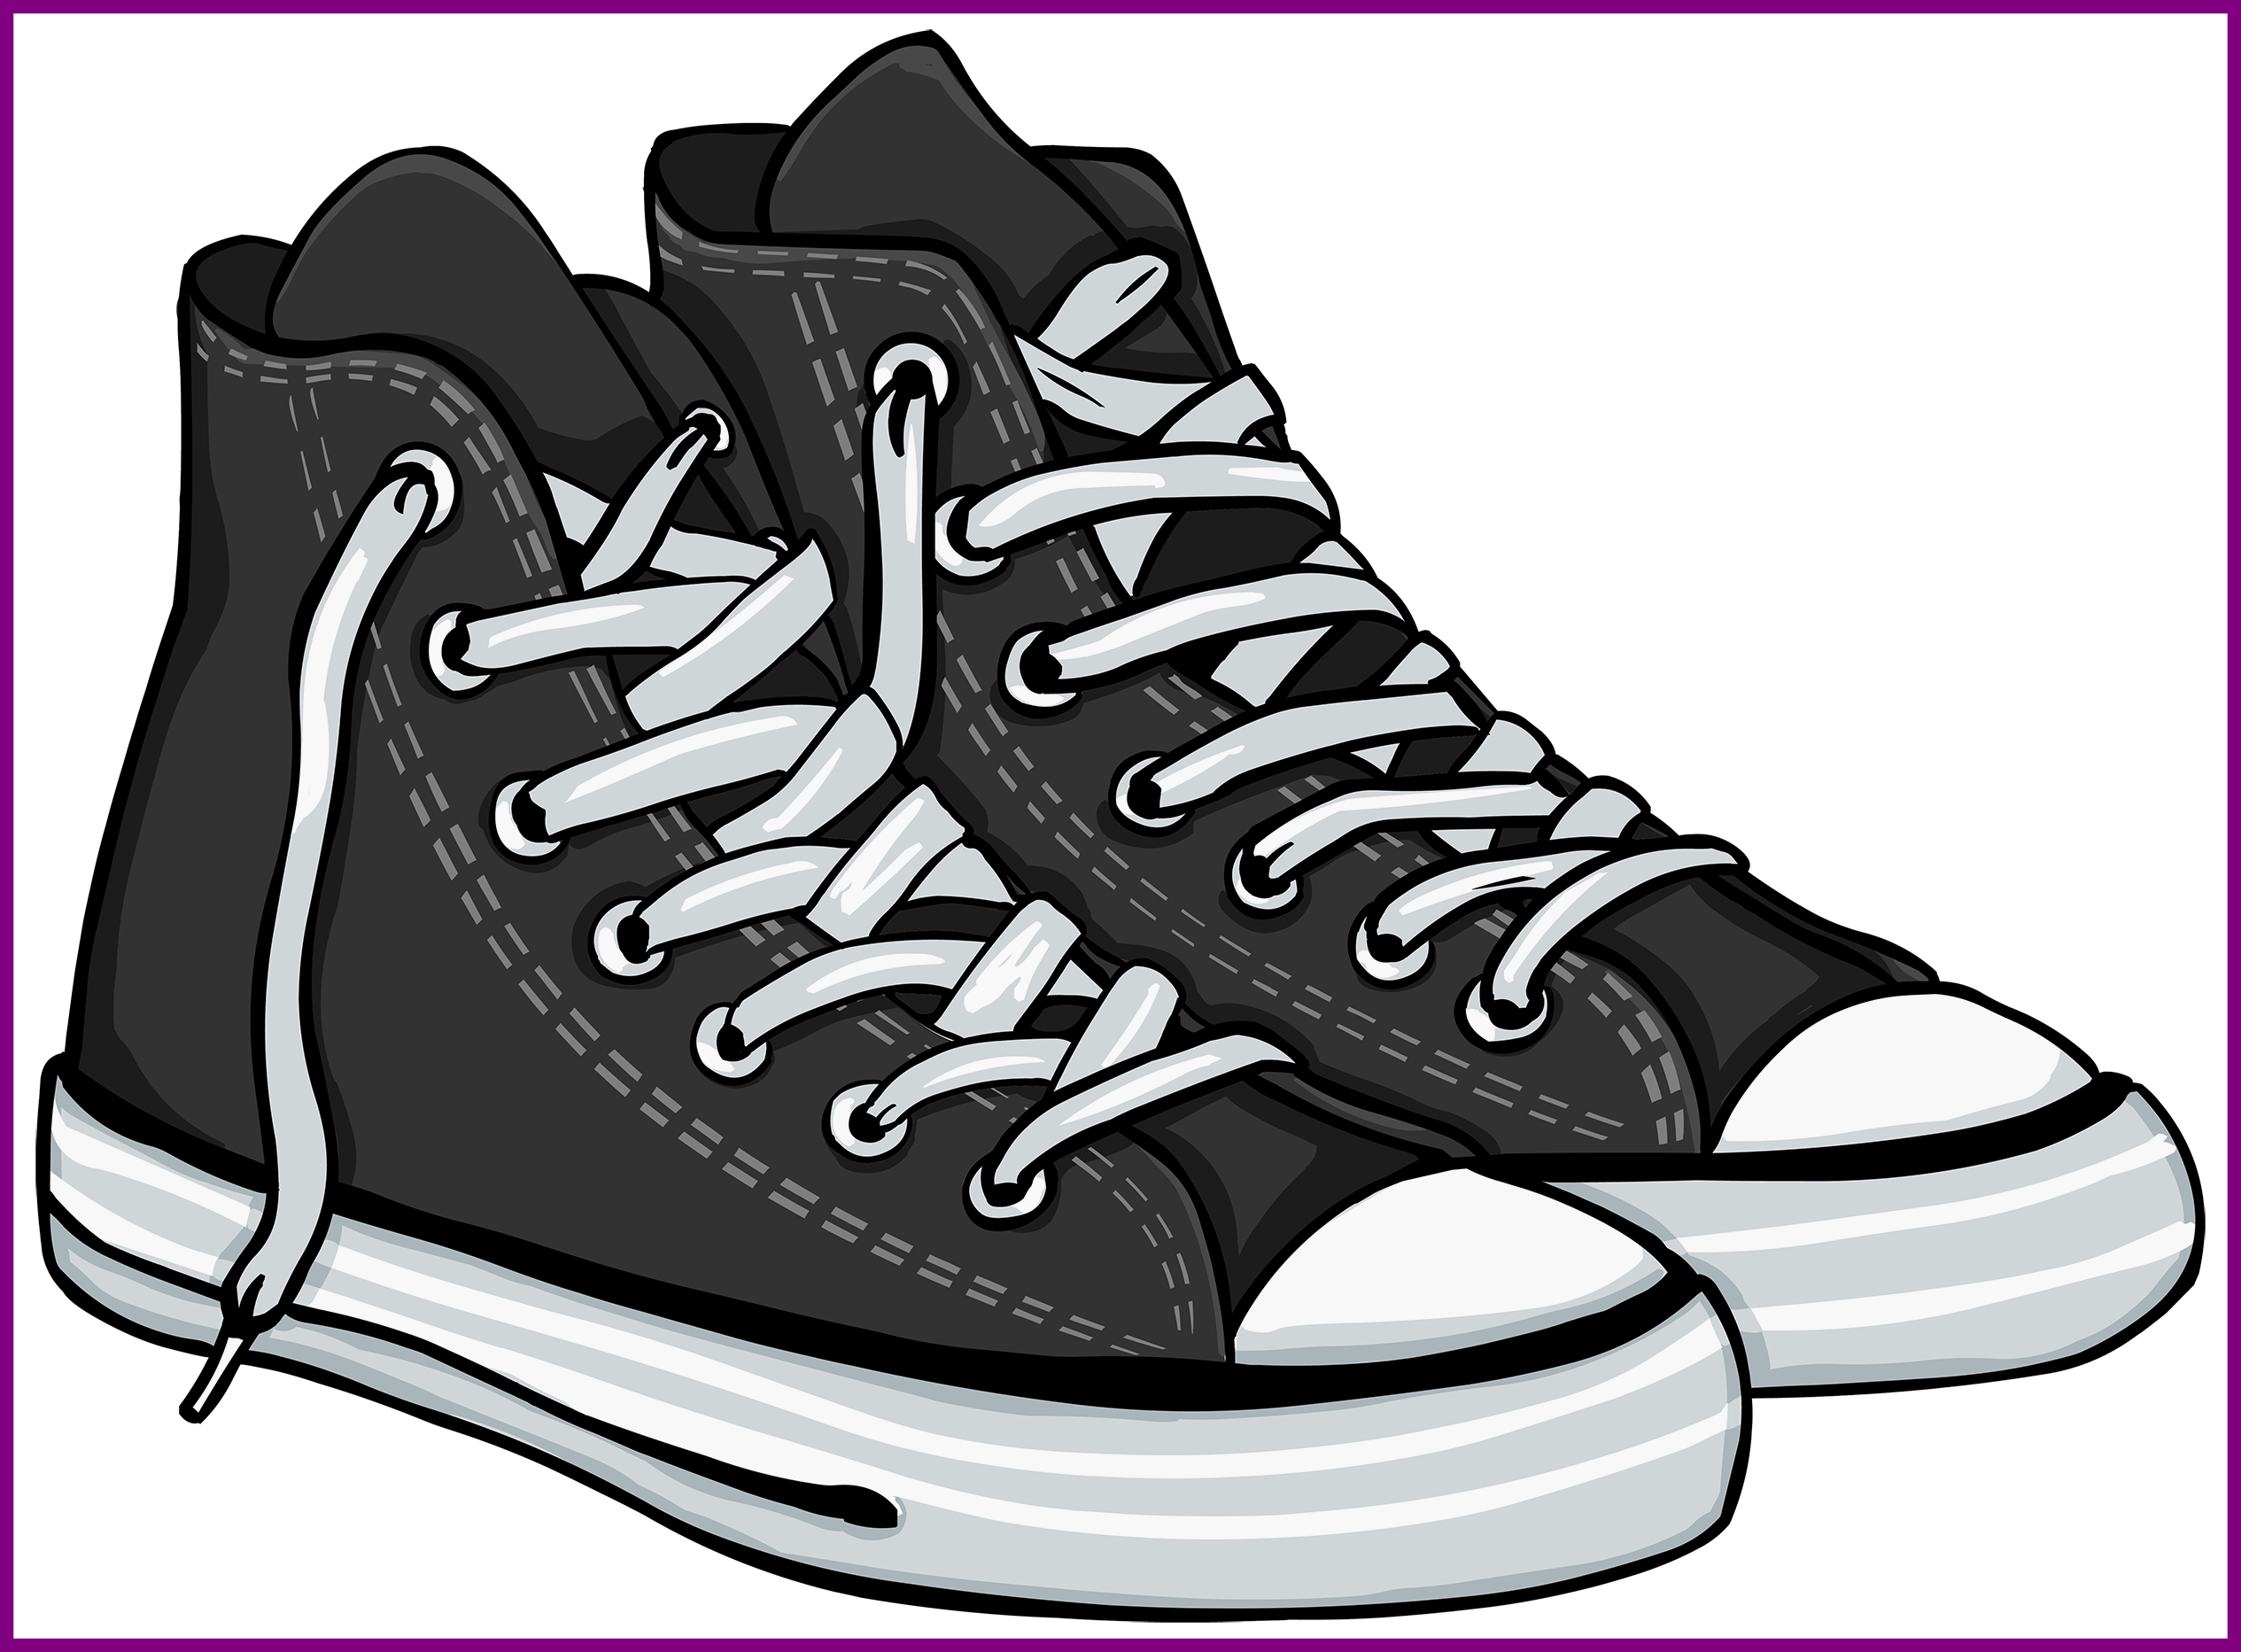 Basketball shoes black and white clipart black and white library Stunning Clip Art Flip Flop Border Pics For Shoes Clipart Style And ... black and white library